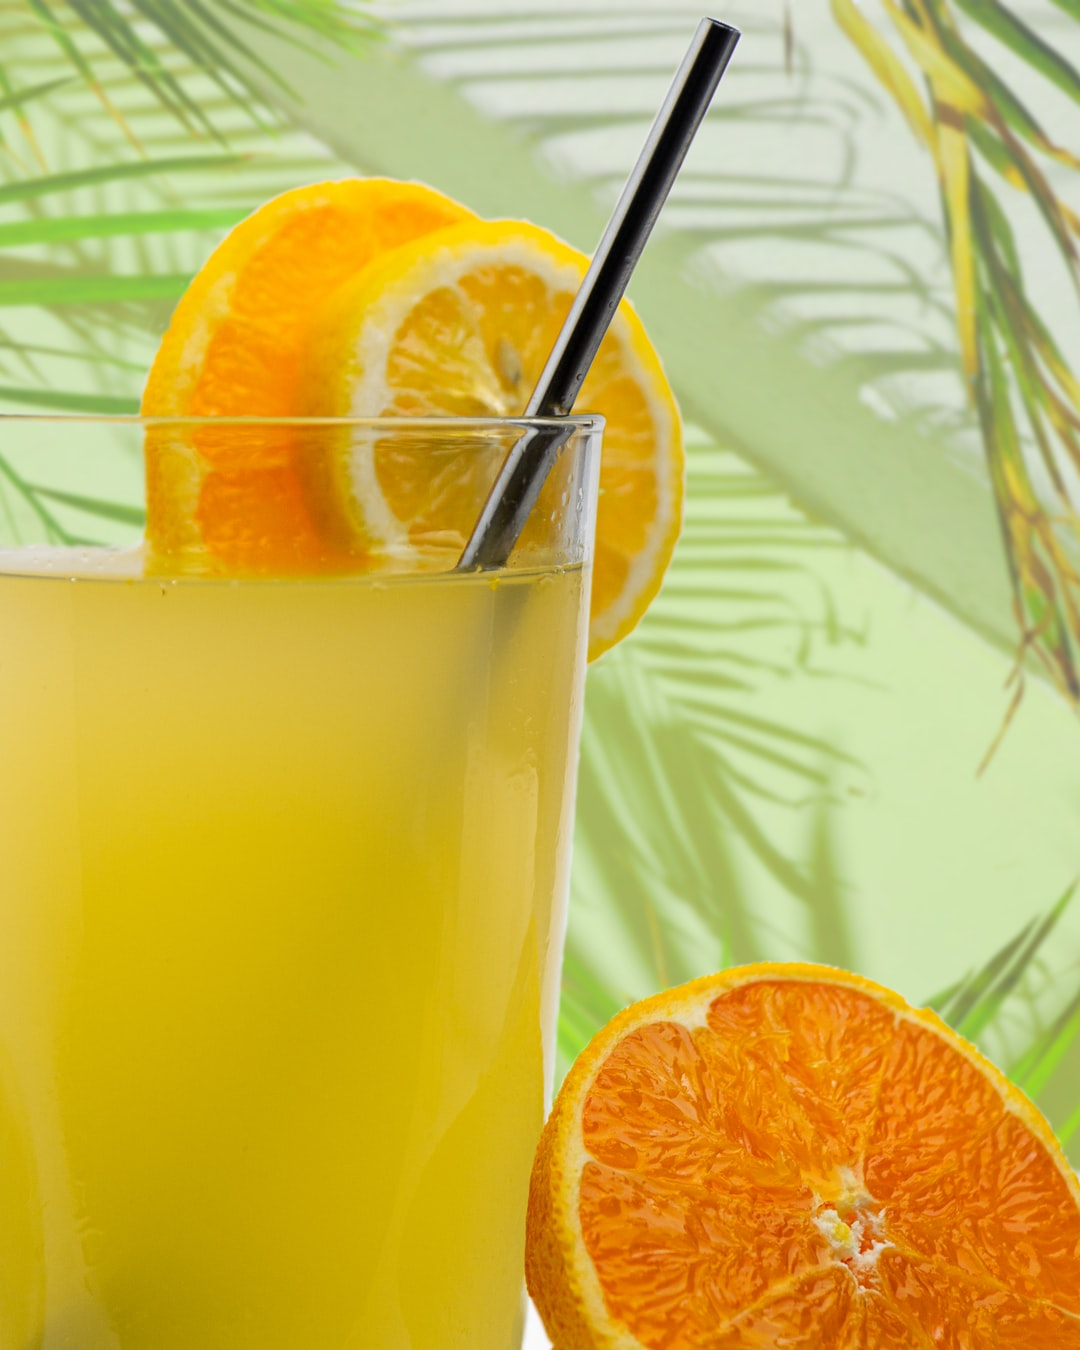 Summer vibe with a lemonade with oranges and lemons